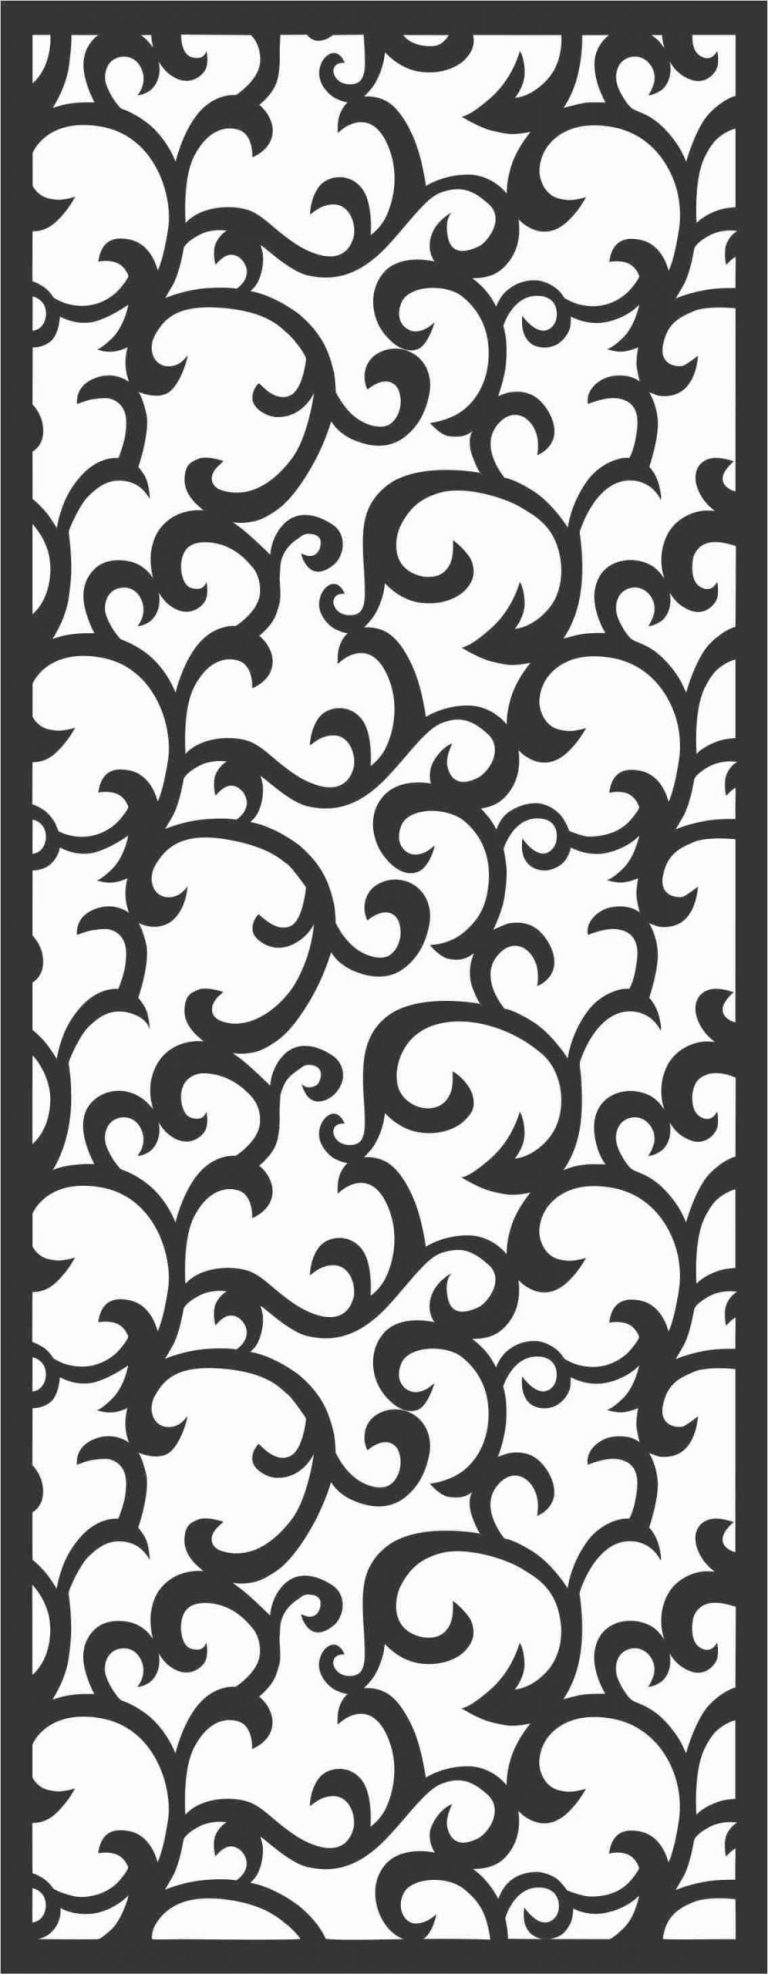 Decorative Screen Patterns For Laser Cutting 68 Free DXF File